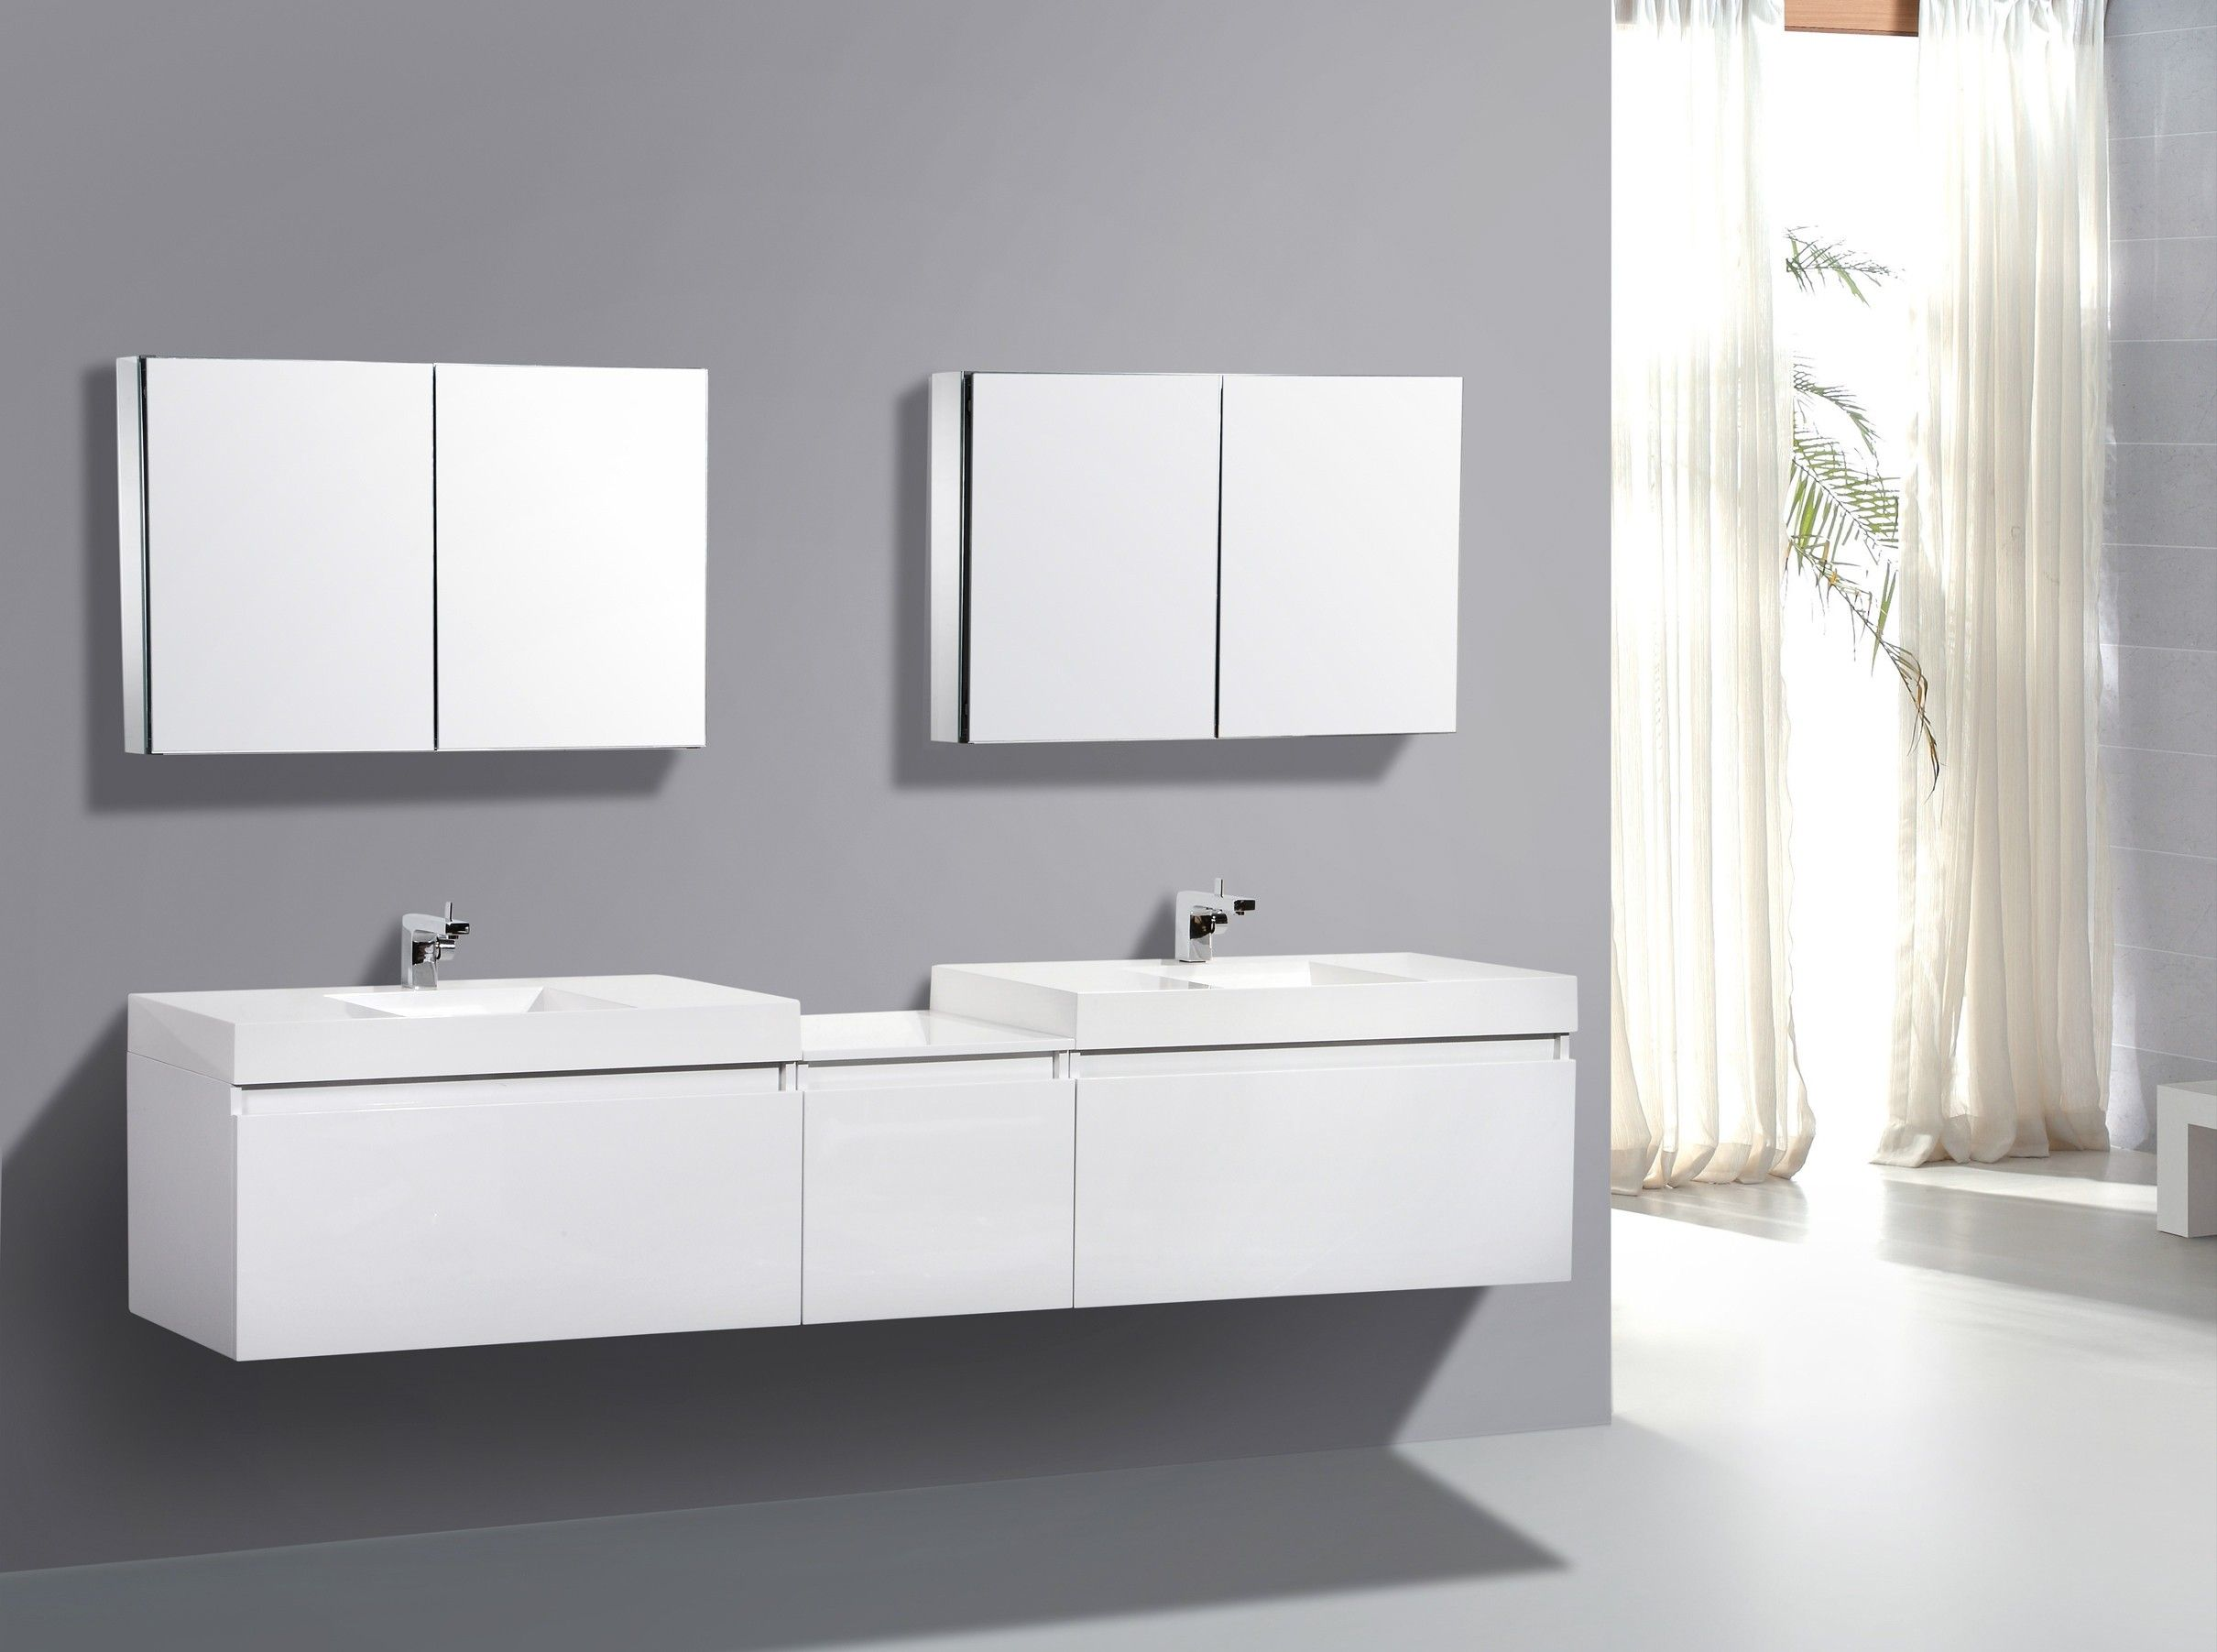 AQUA DECOR Venice 68 Inch Double Modern Bathroom Vanity Set W/ Medicine  Cabinet   White